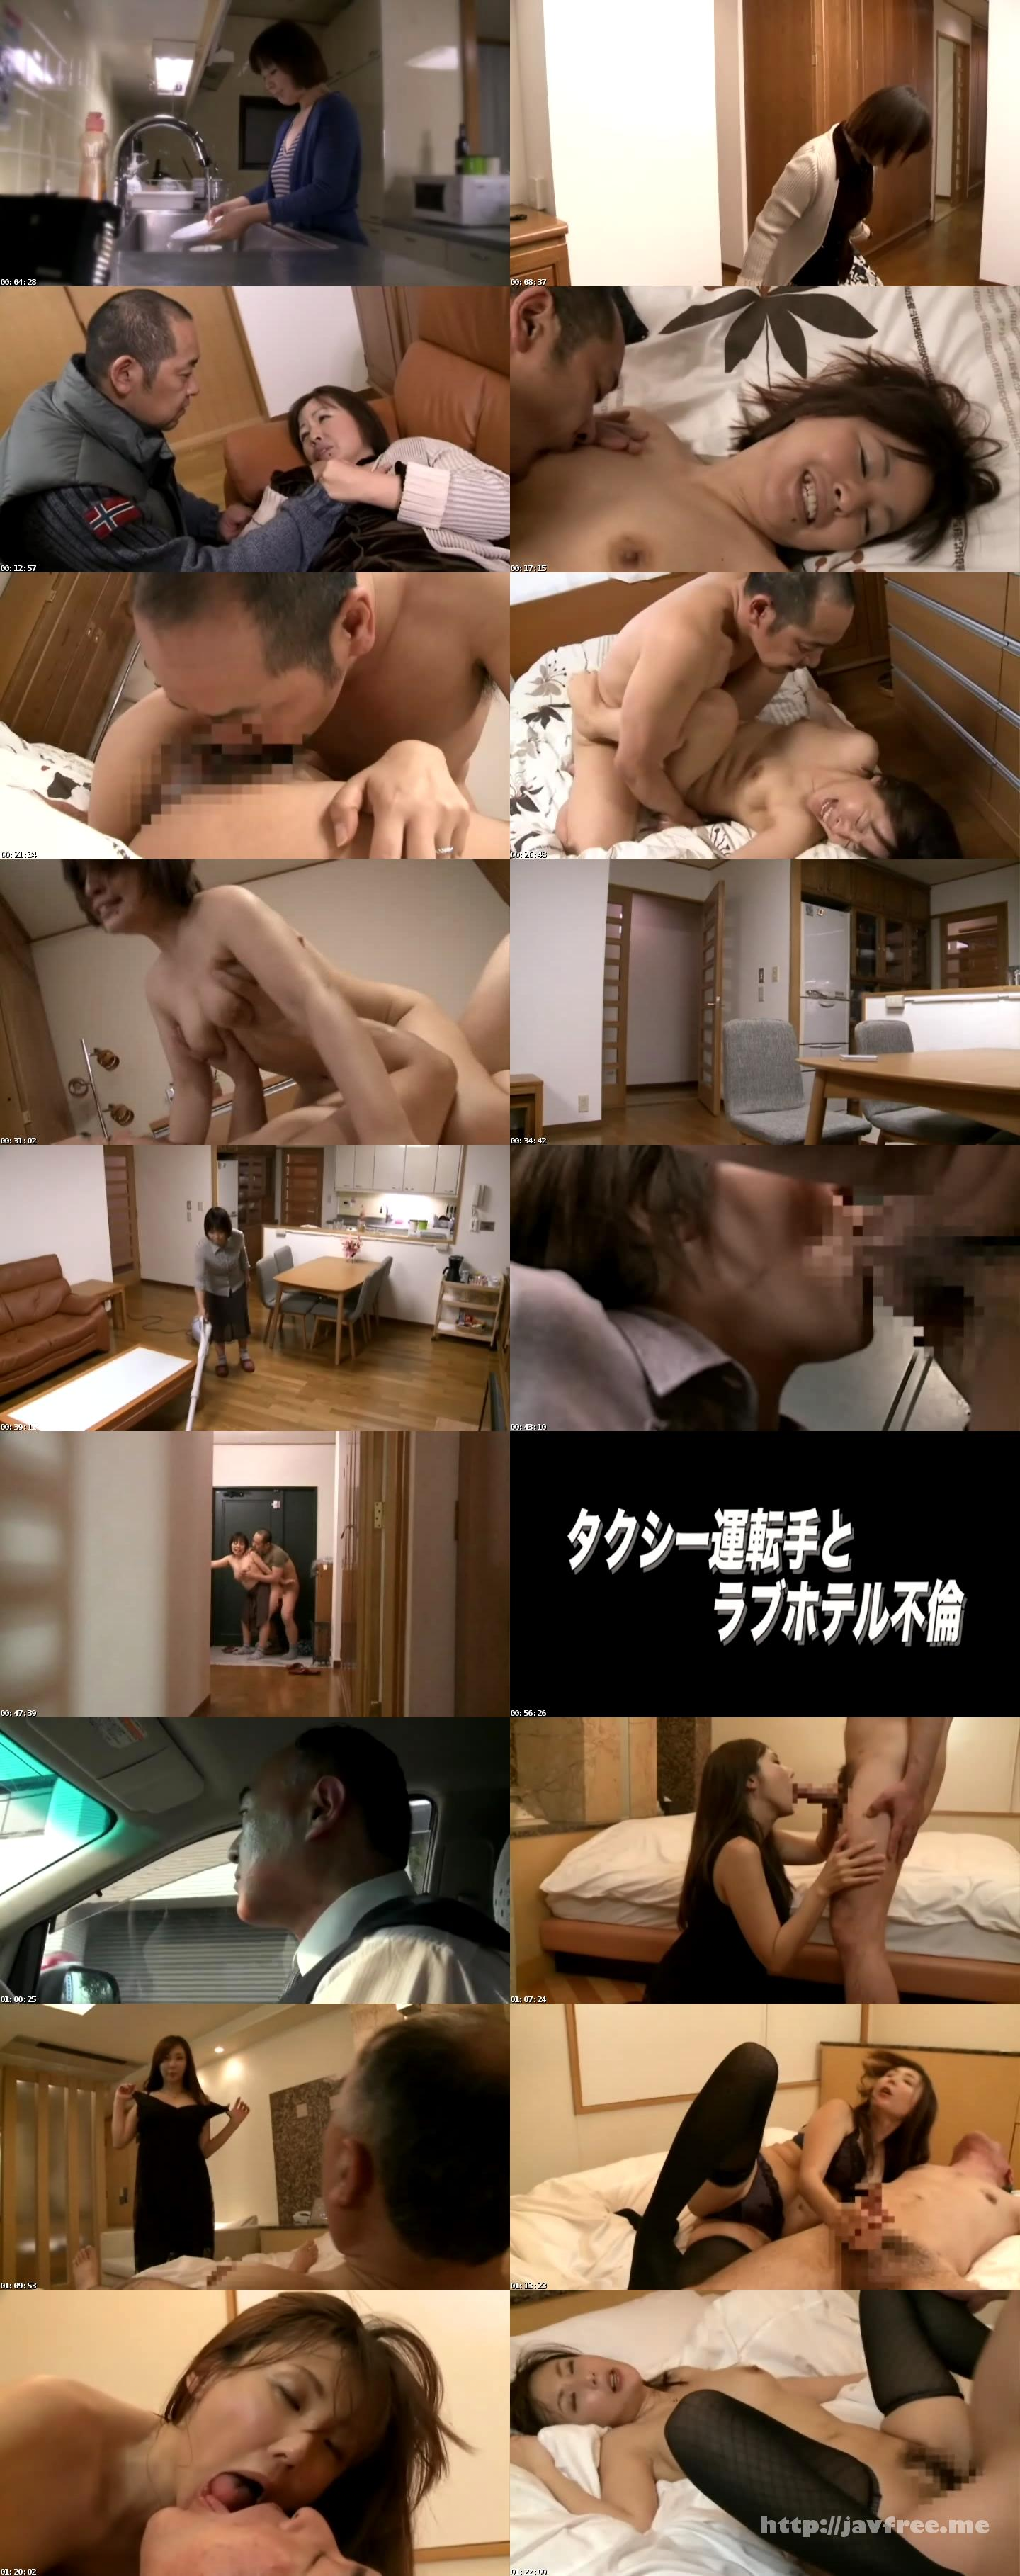 [AKBS-019] 匂い立つ熟女 クリーニング屋のそそり立つ一物/タクシー運転手とラブホテル不倫 美里愛 山吹瞳 - image AKBS-019 on https://javfree.me